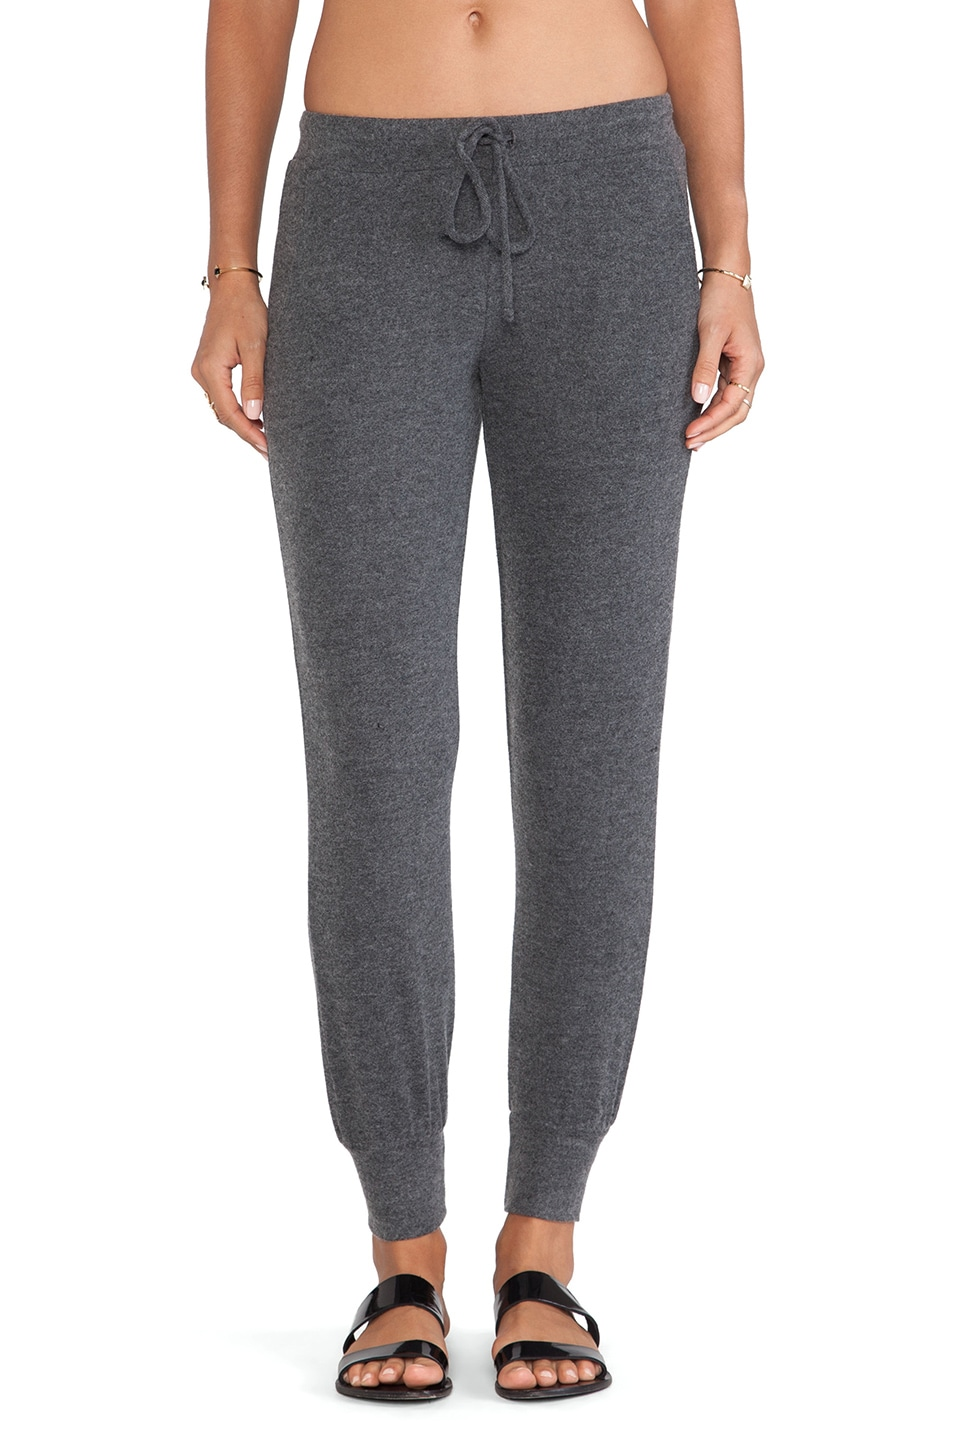 Velvet by Graham & Spencer Fabiola Cozy Jersey Pant in Charcoal